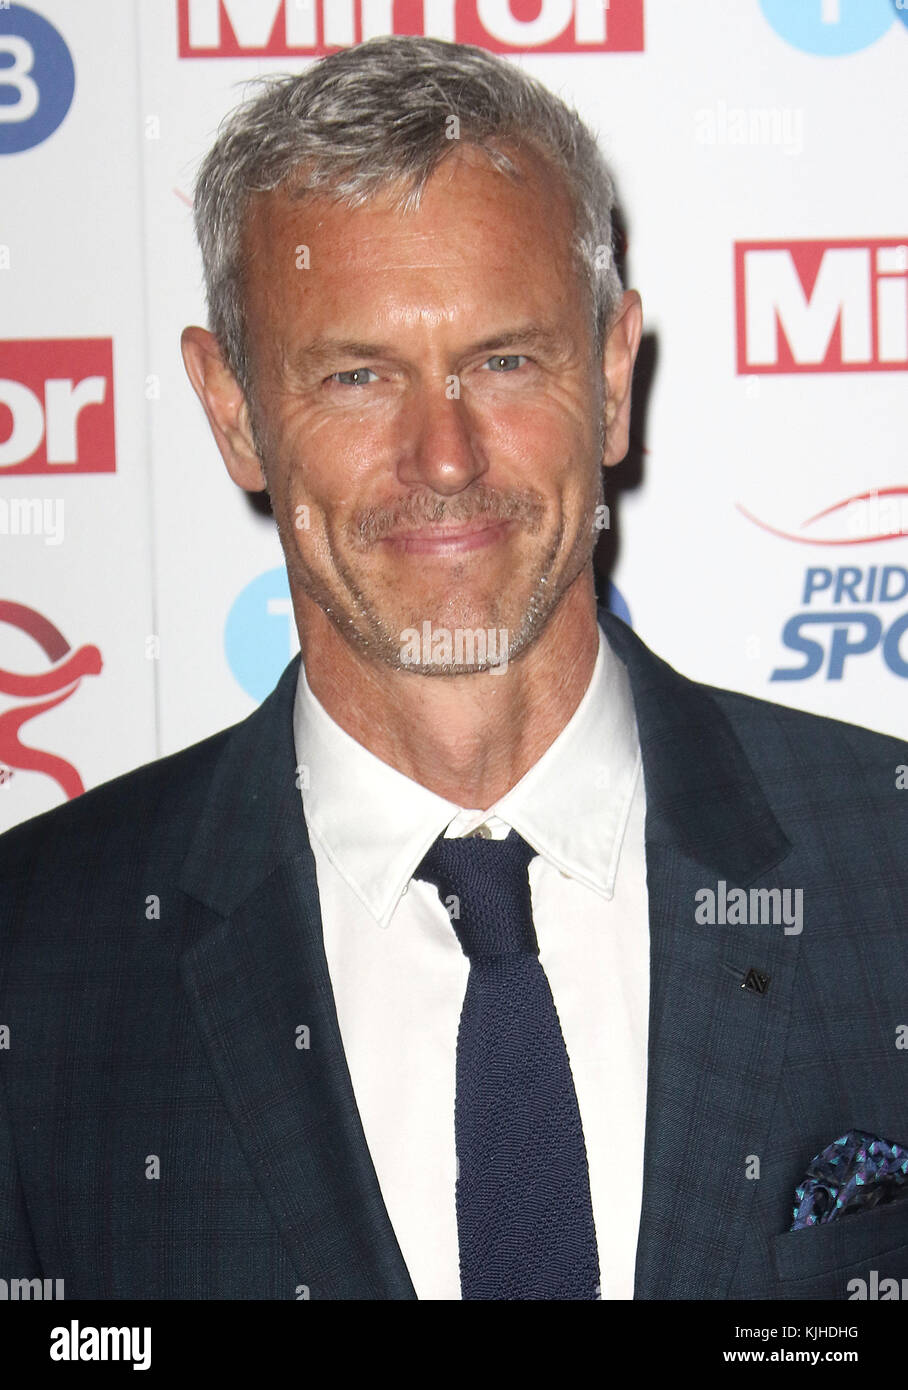 Nov 22, 2017 - Mark Foster attending Pride of Sport Awards 2017, Grosvenor House Hotel in London, England, UK - Stock Image